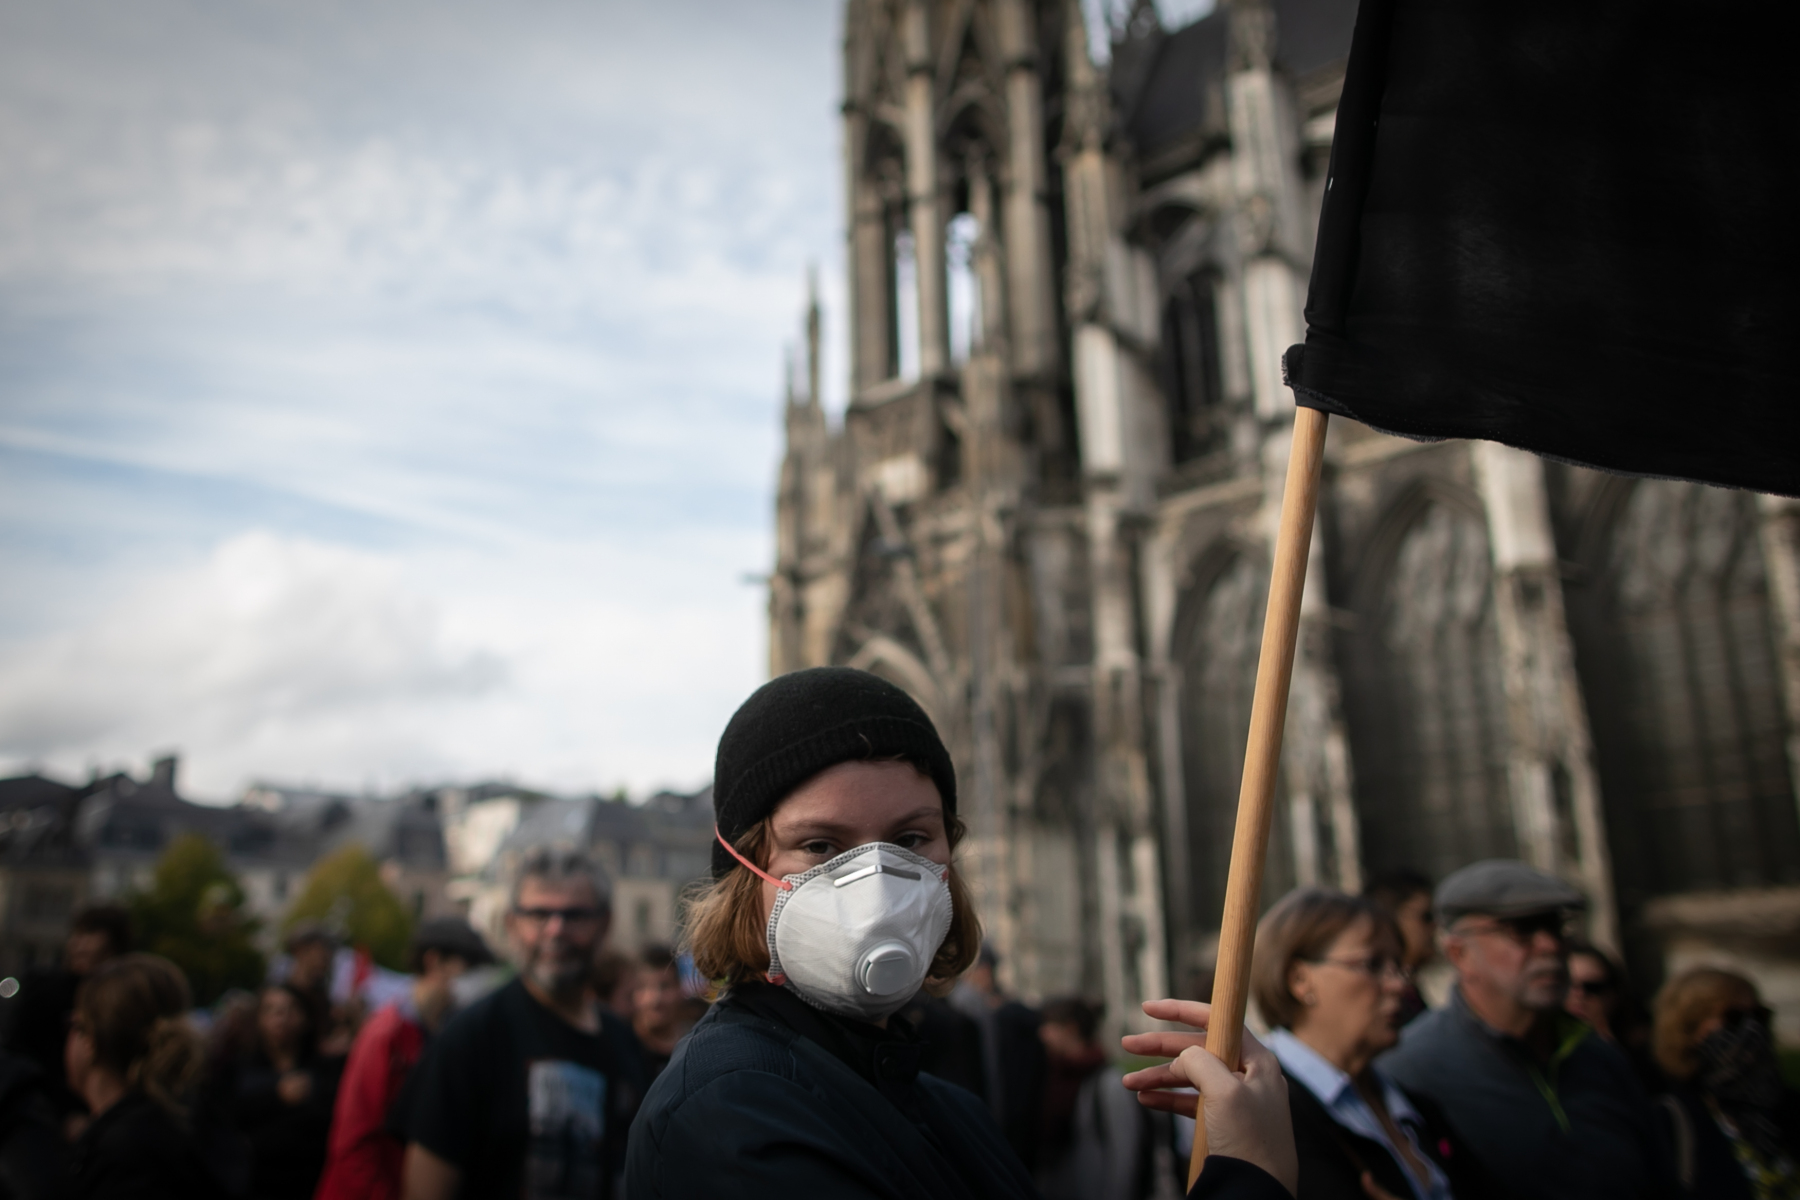 A militant holds a banner during a demonstration on october 12, 2019, in Rouen, Normandy, to protest after the fire at the Lubrizol factory which occures on september 26, 2019.